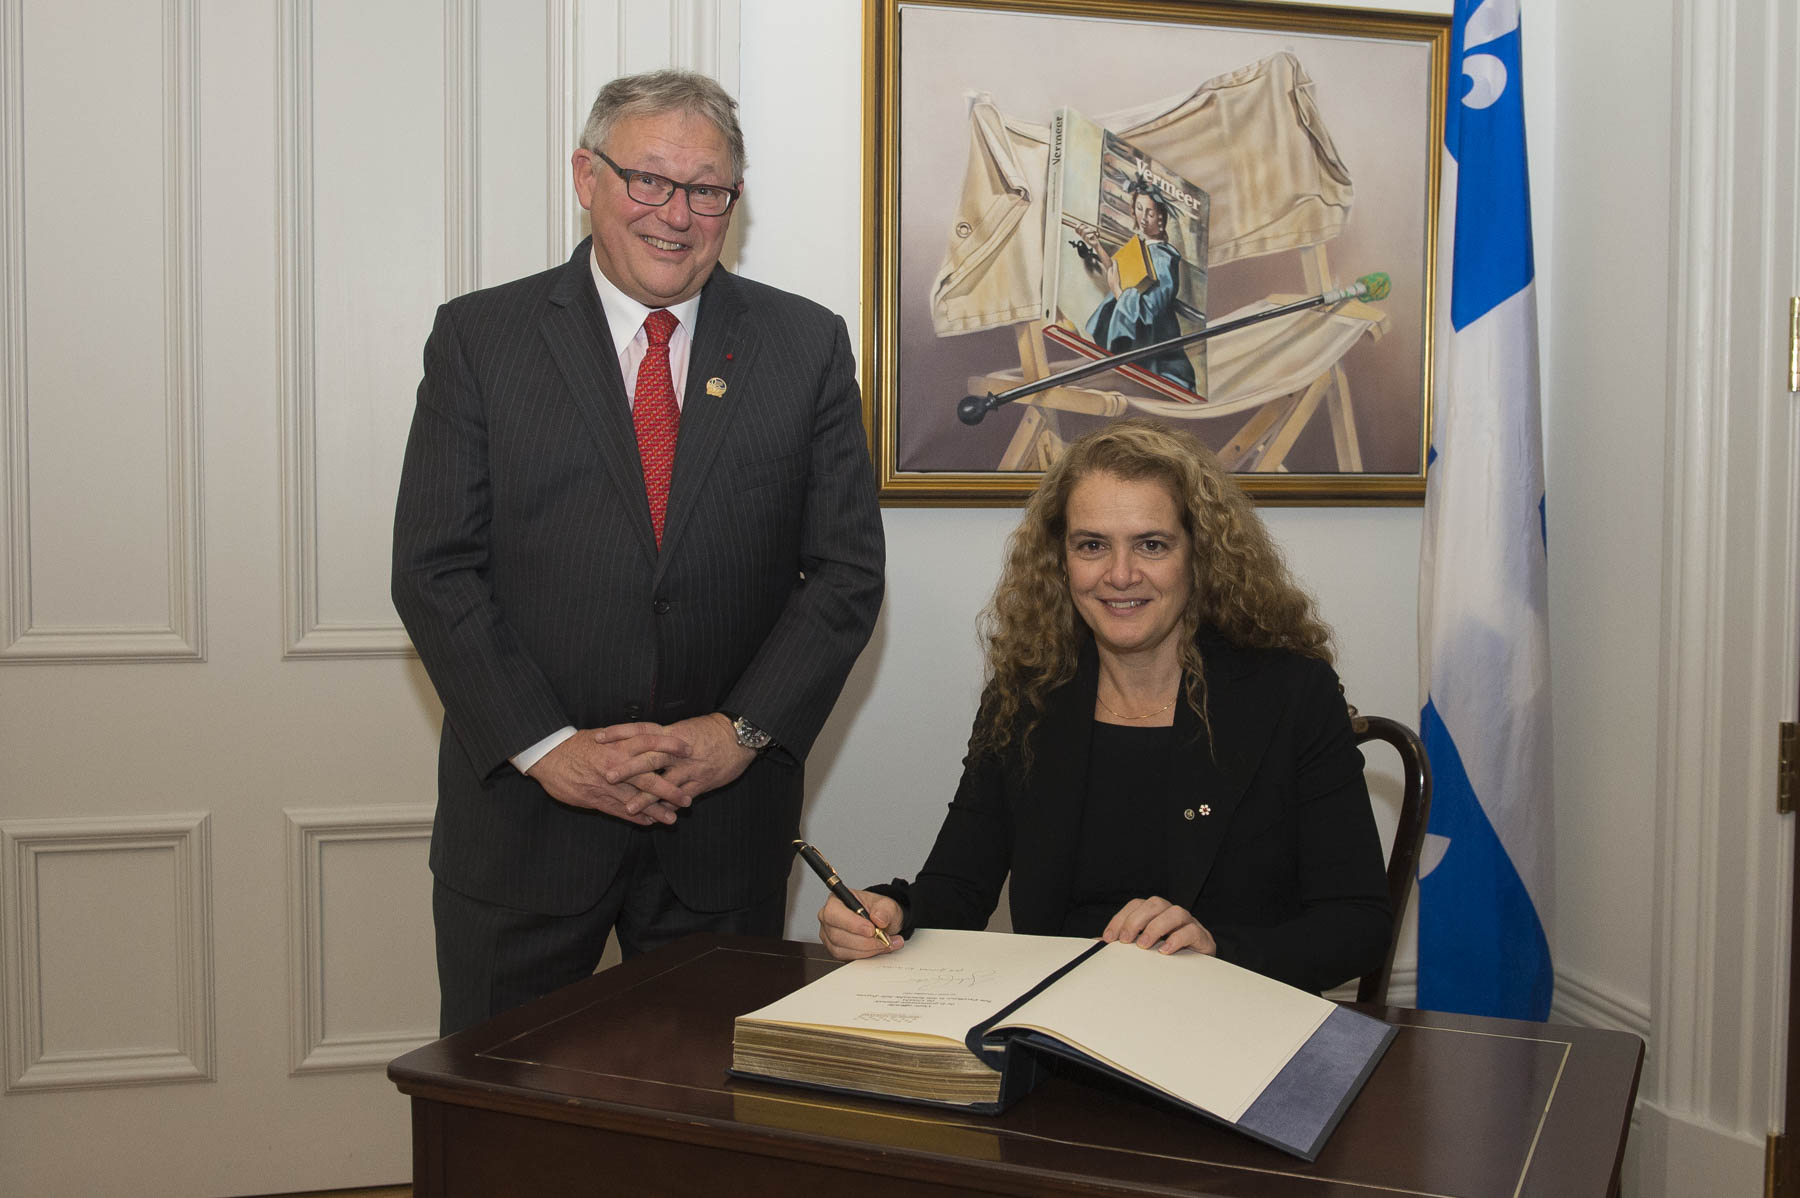 Finally, she met with the Honourable Jacques Chagnon, Speaker of the National Assembly of Quebec.